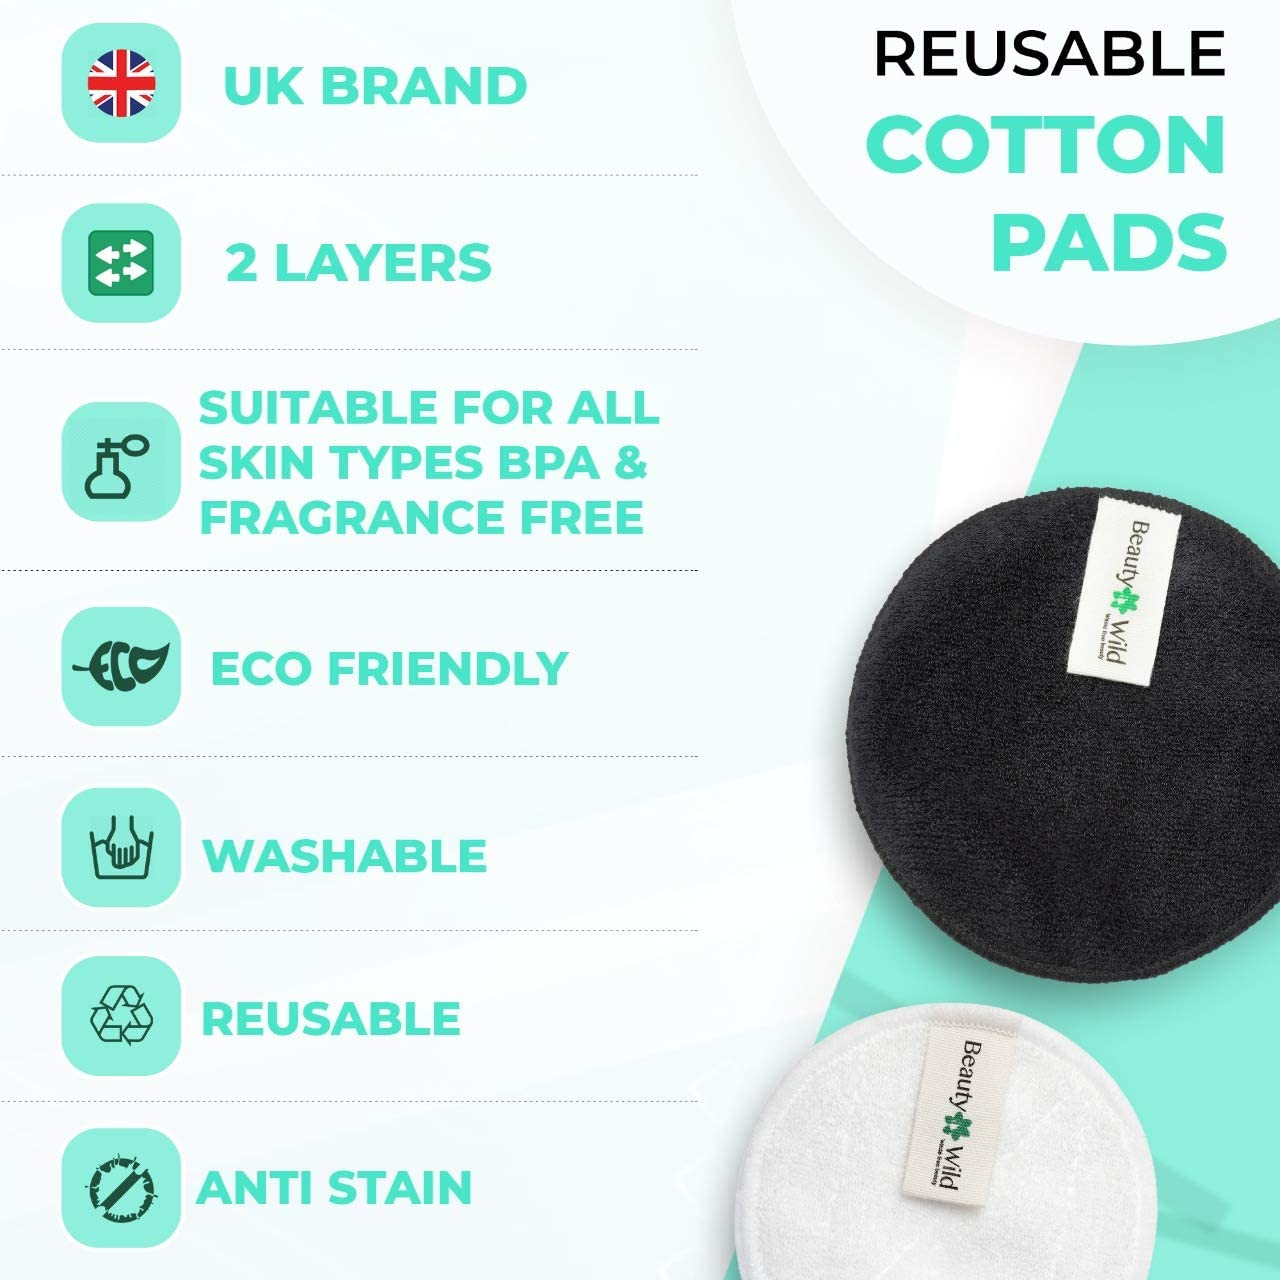 21 x Bamboo Cotton Reusable Face Pads with Wash Bag 2-Layer Make Up Remove Facial Rounds for Sensitive Skin Eco-Friendly Make-Up Cleansing Cloths BeautyWild Reusable Makeup Remover Pads Set